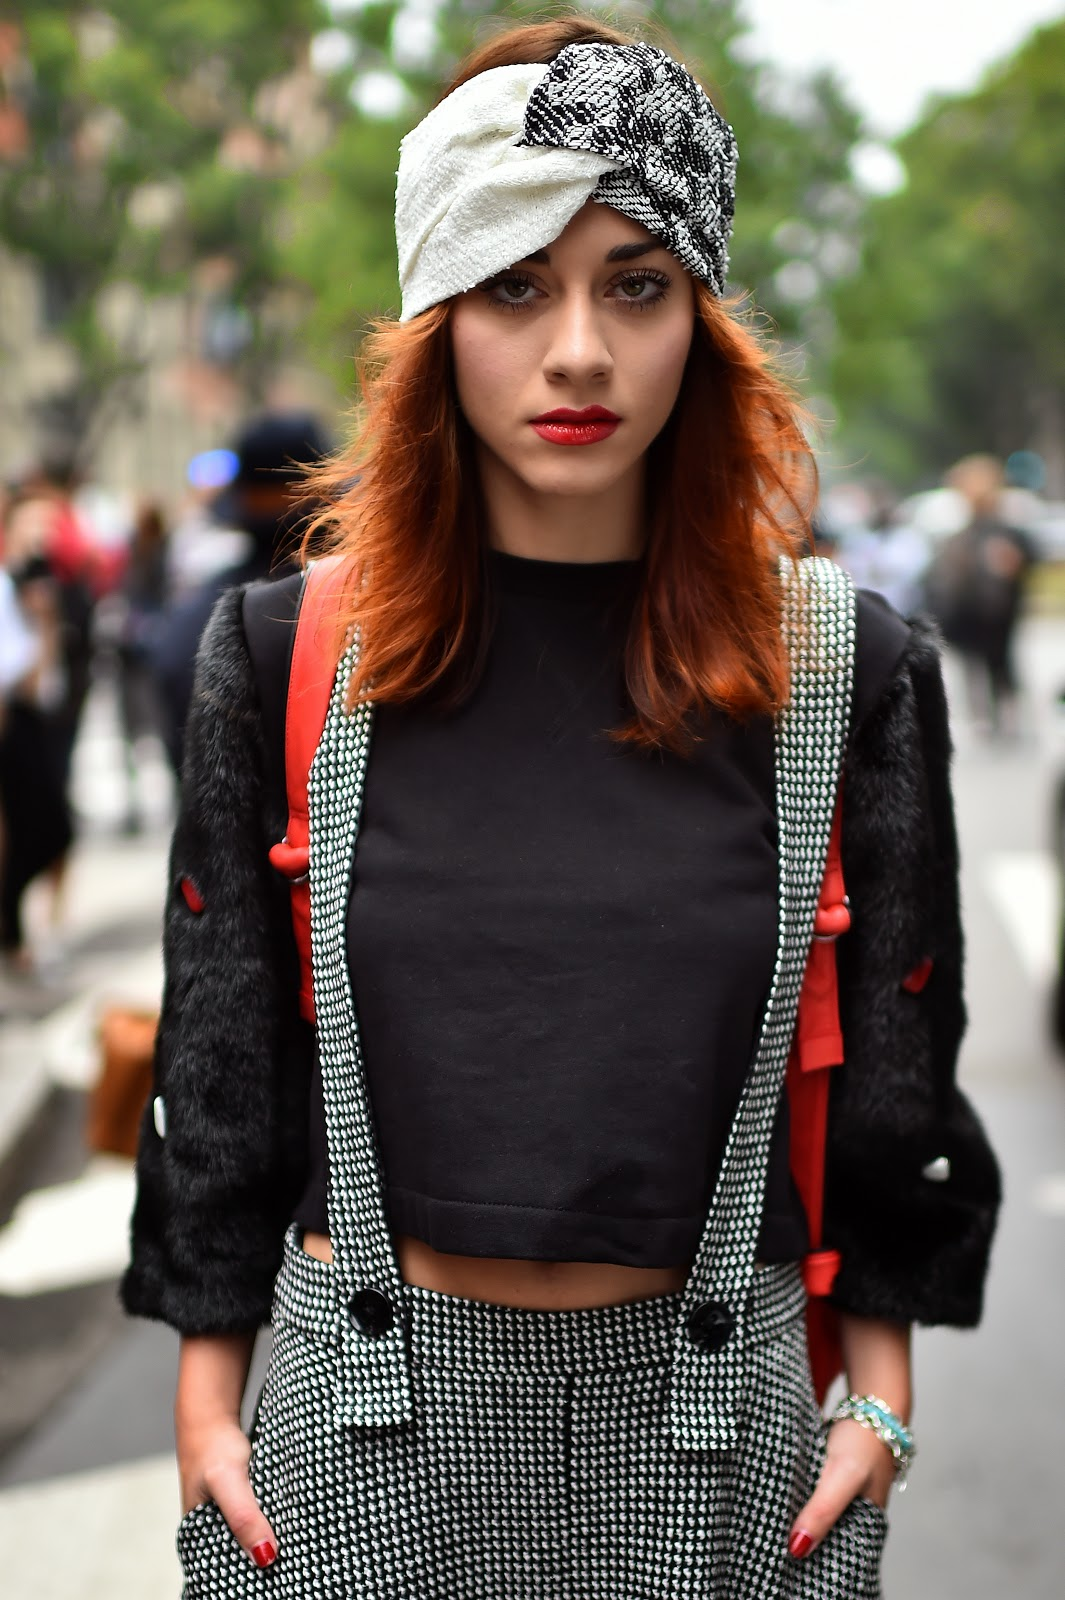 Milan Fashion Week 2015 - Street Style in Pictures